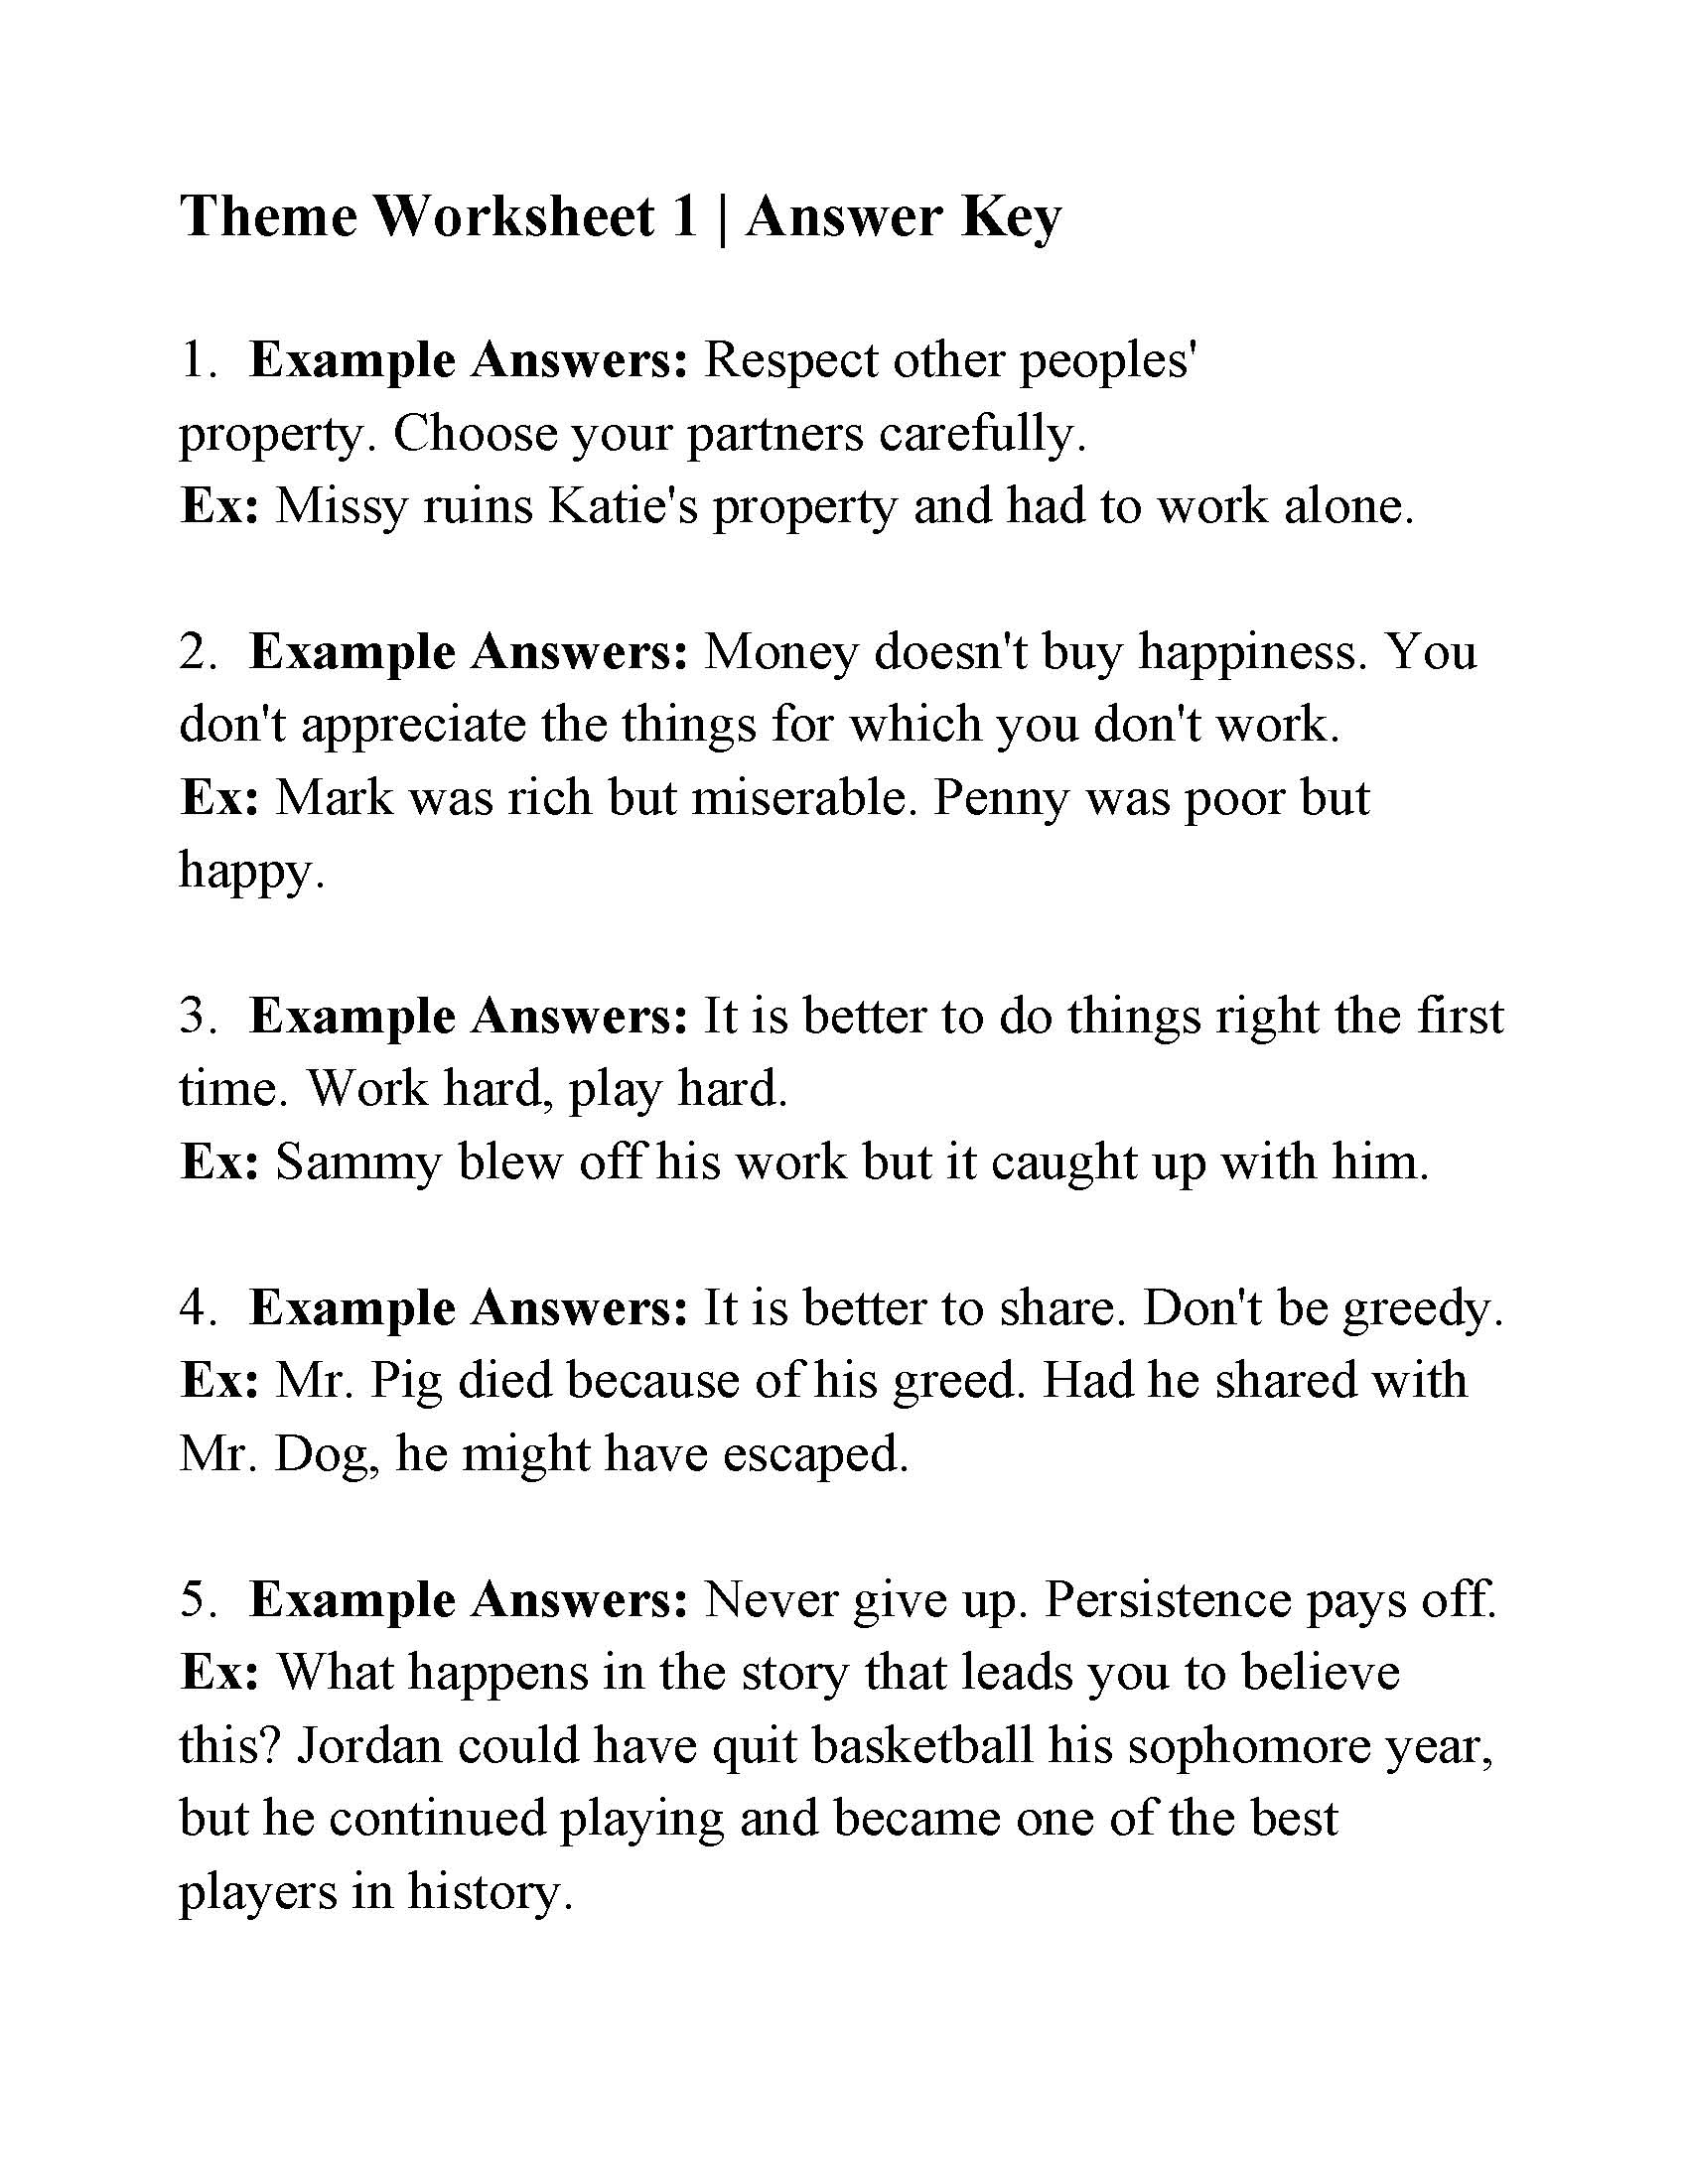 Theme Worksheet 1 | Answers